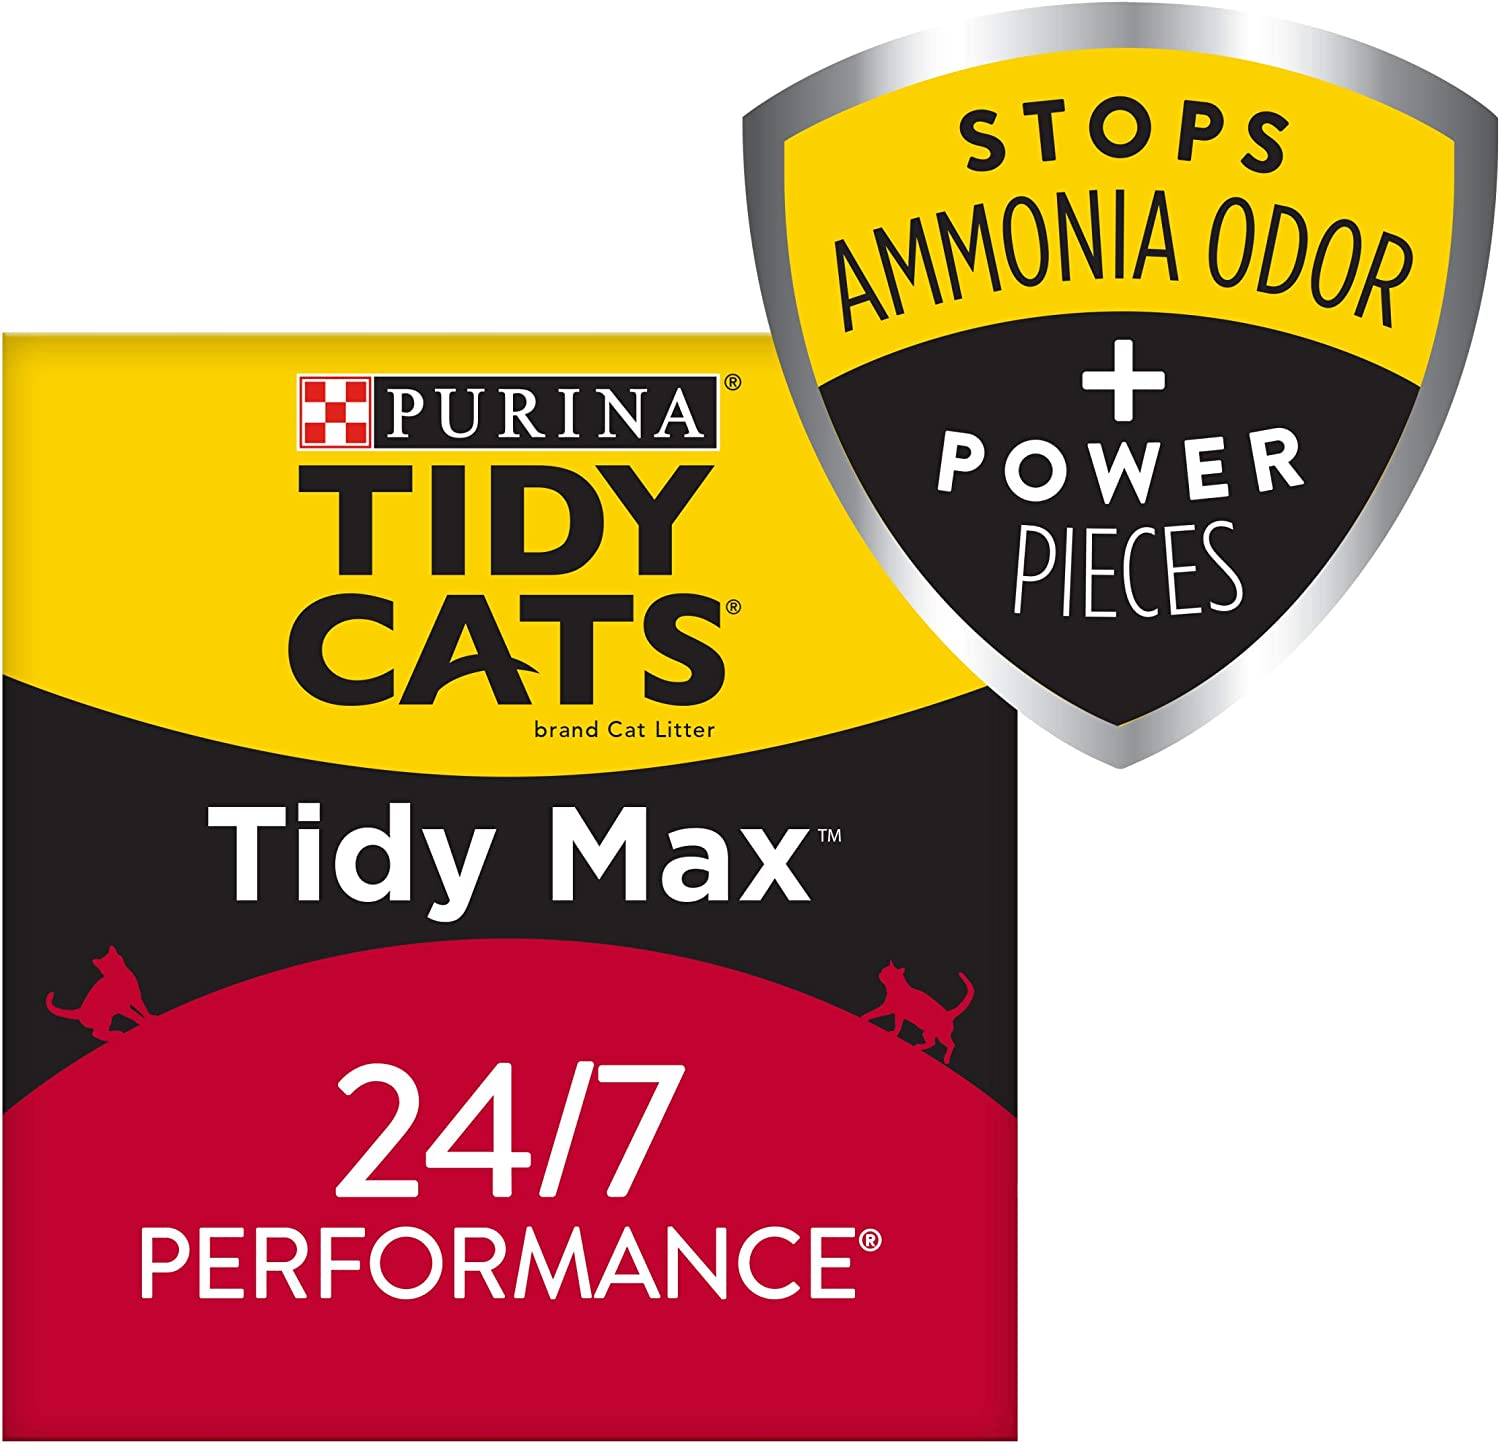 Purina Tidy Cats 24/7 Performance Clumping Cat Litter Image